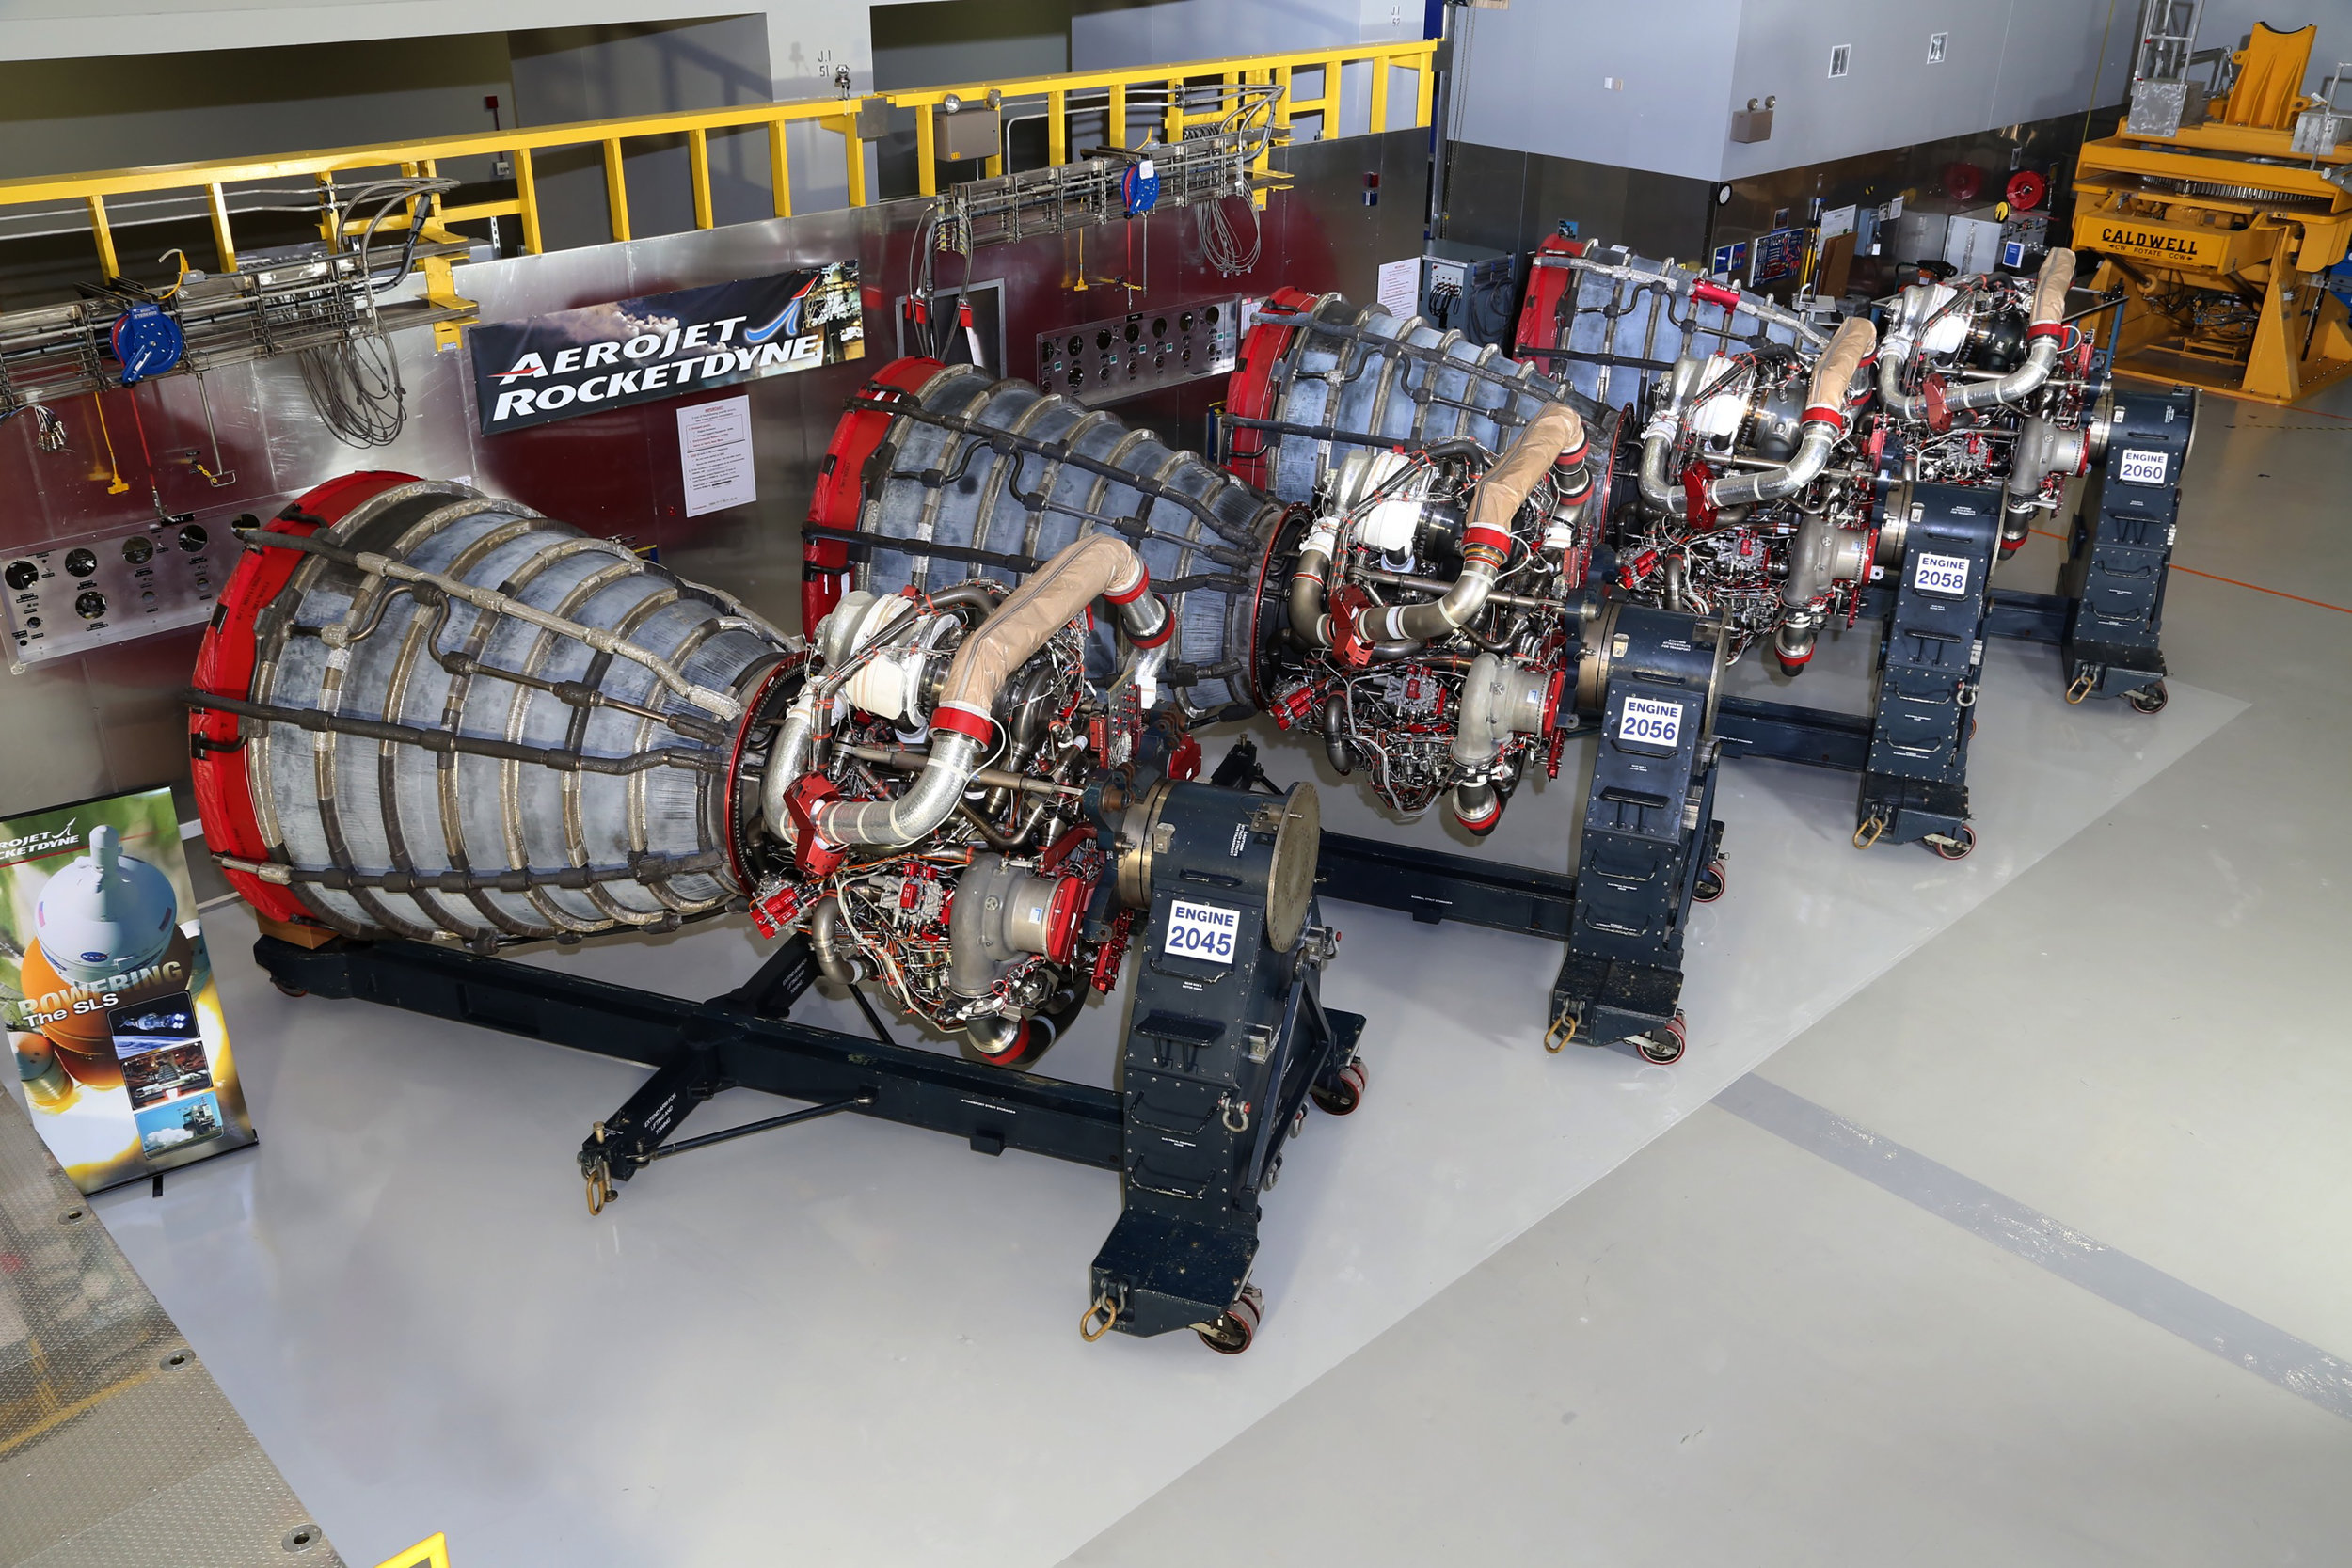 Aerojet Rocketdyne photo via NASA:  https://www.nasa.gov/feature/first-four-space-launch-system-flight-engines-ready-to-rumble